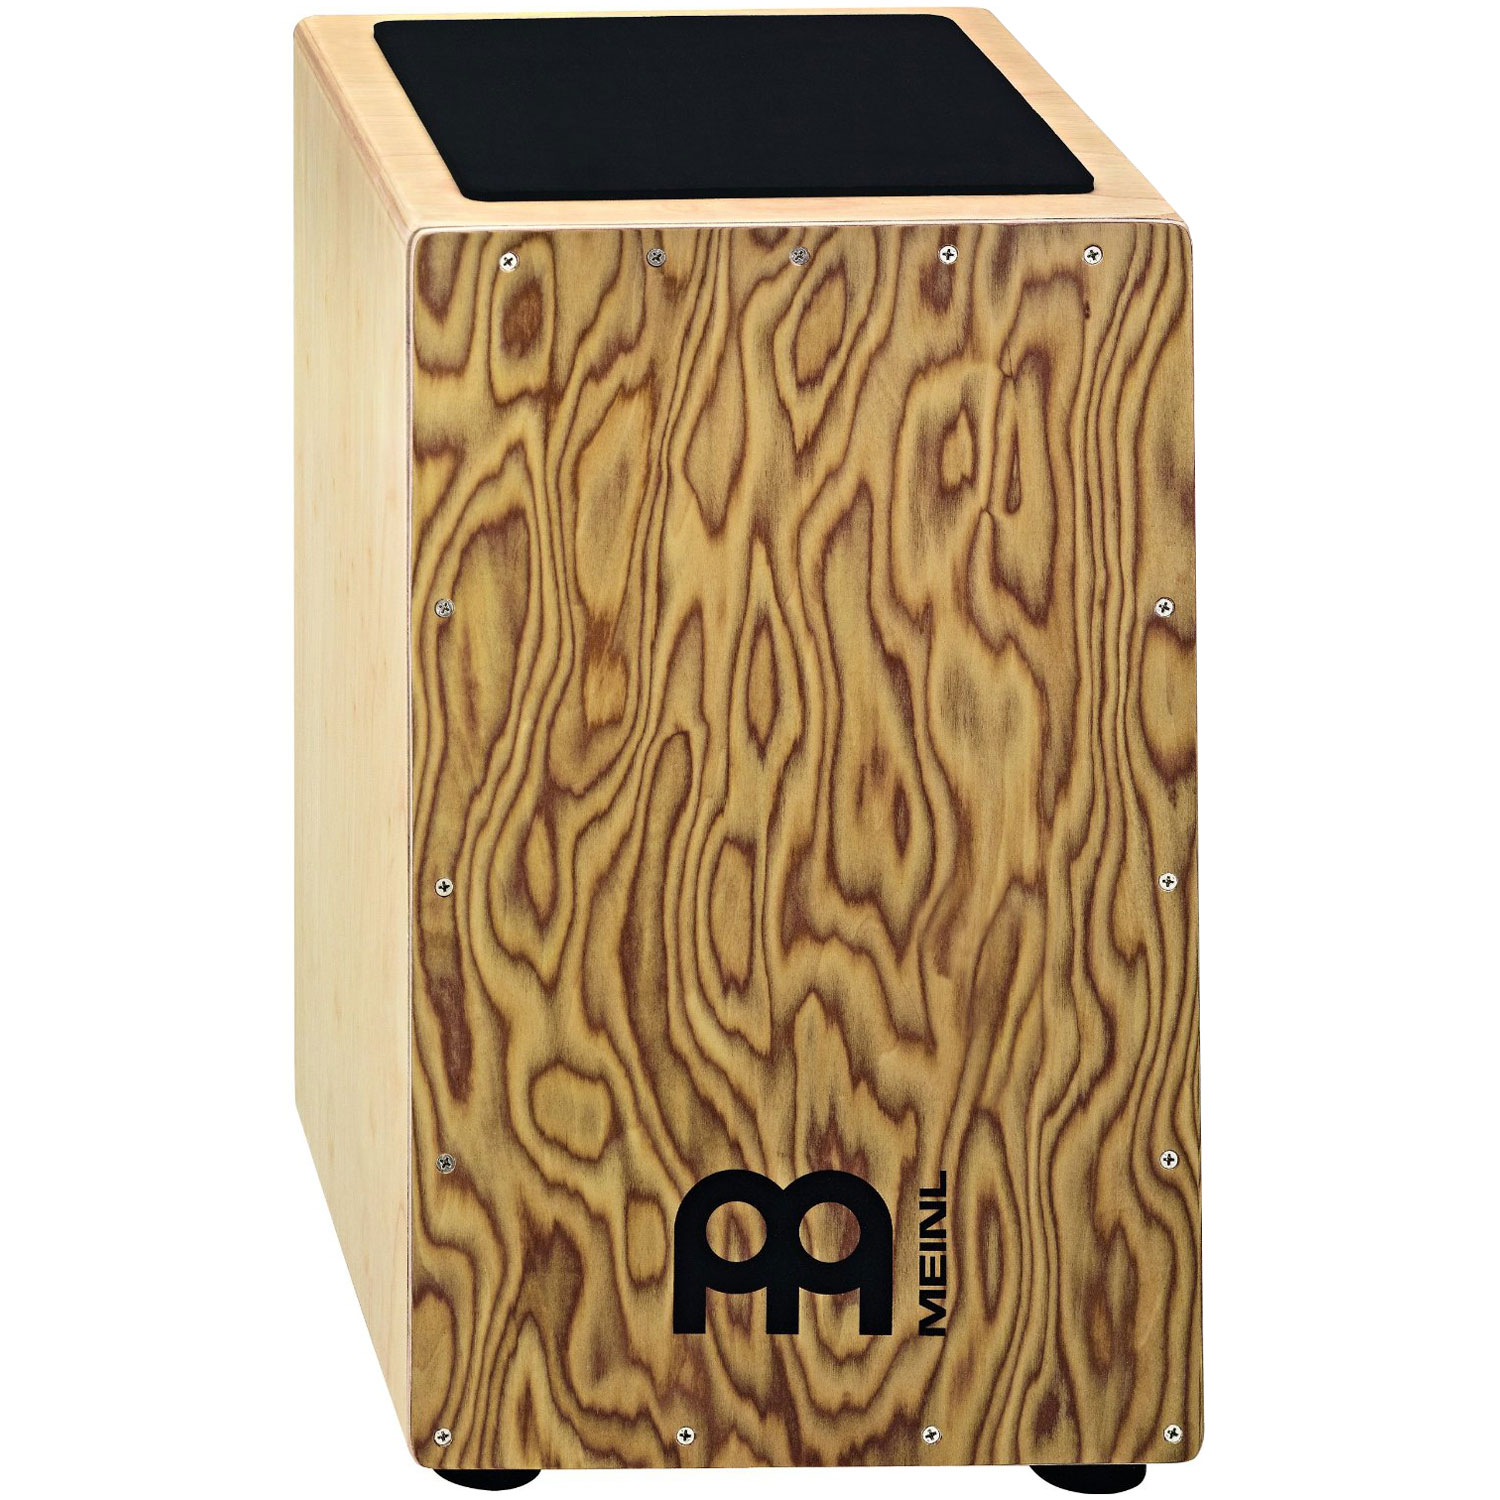 Meinl Traditional String Cajon with Makah Burl Frontplate